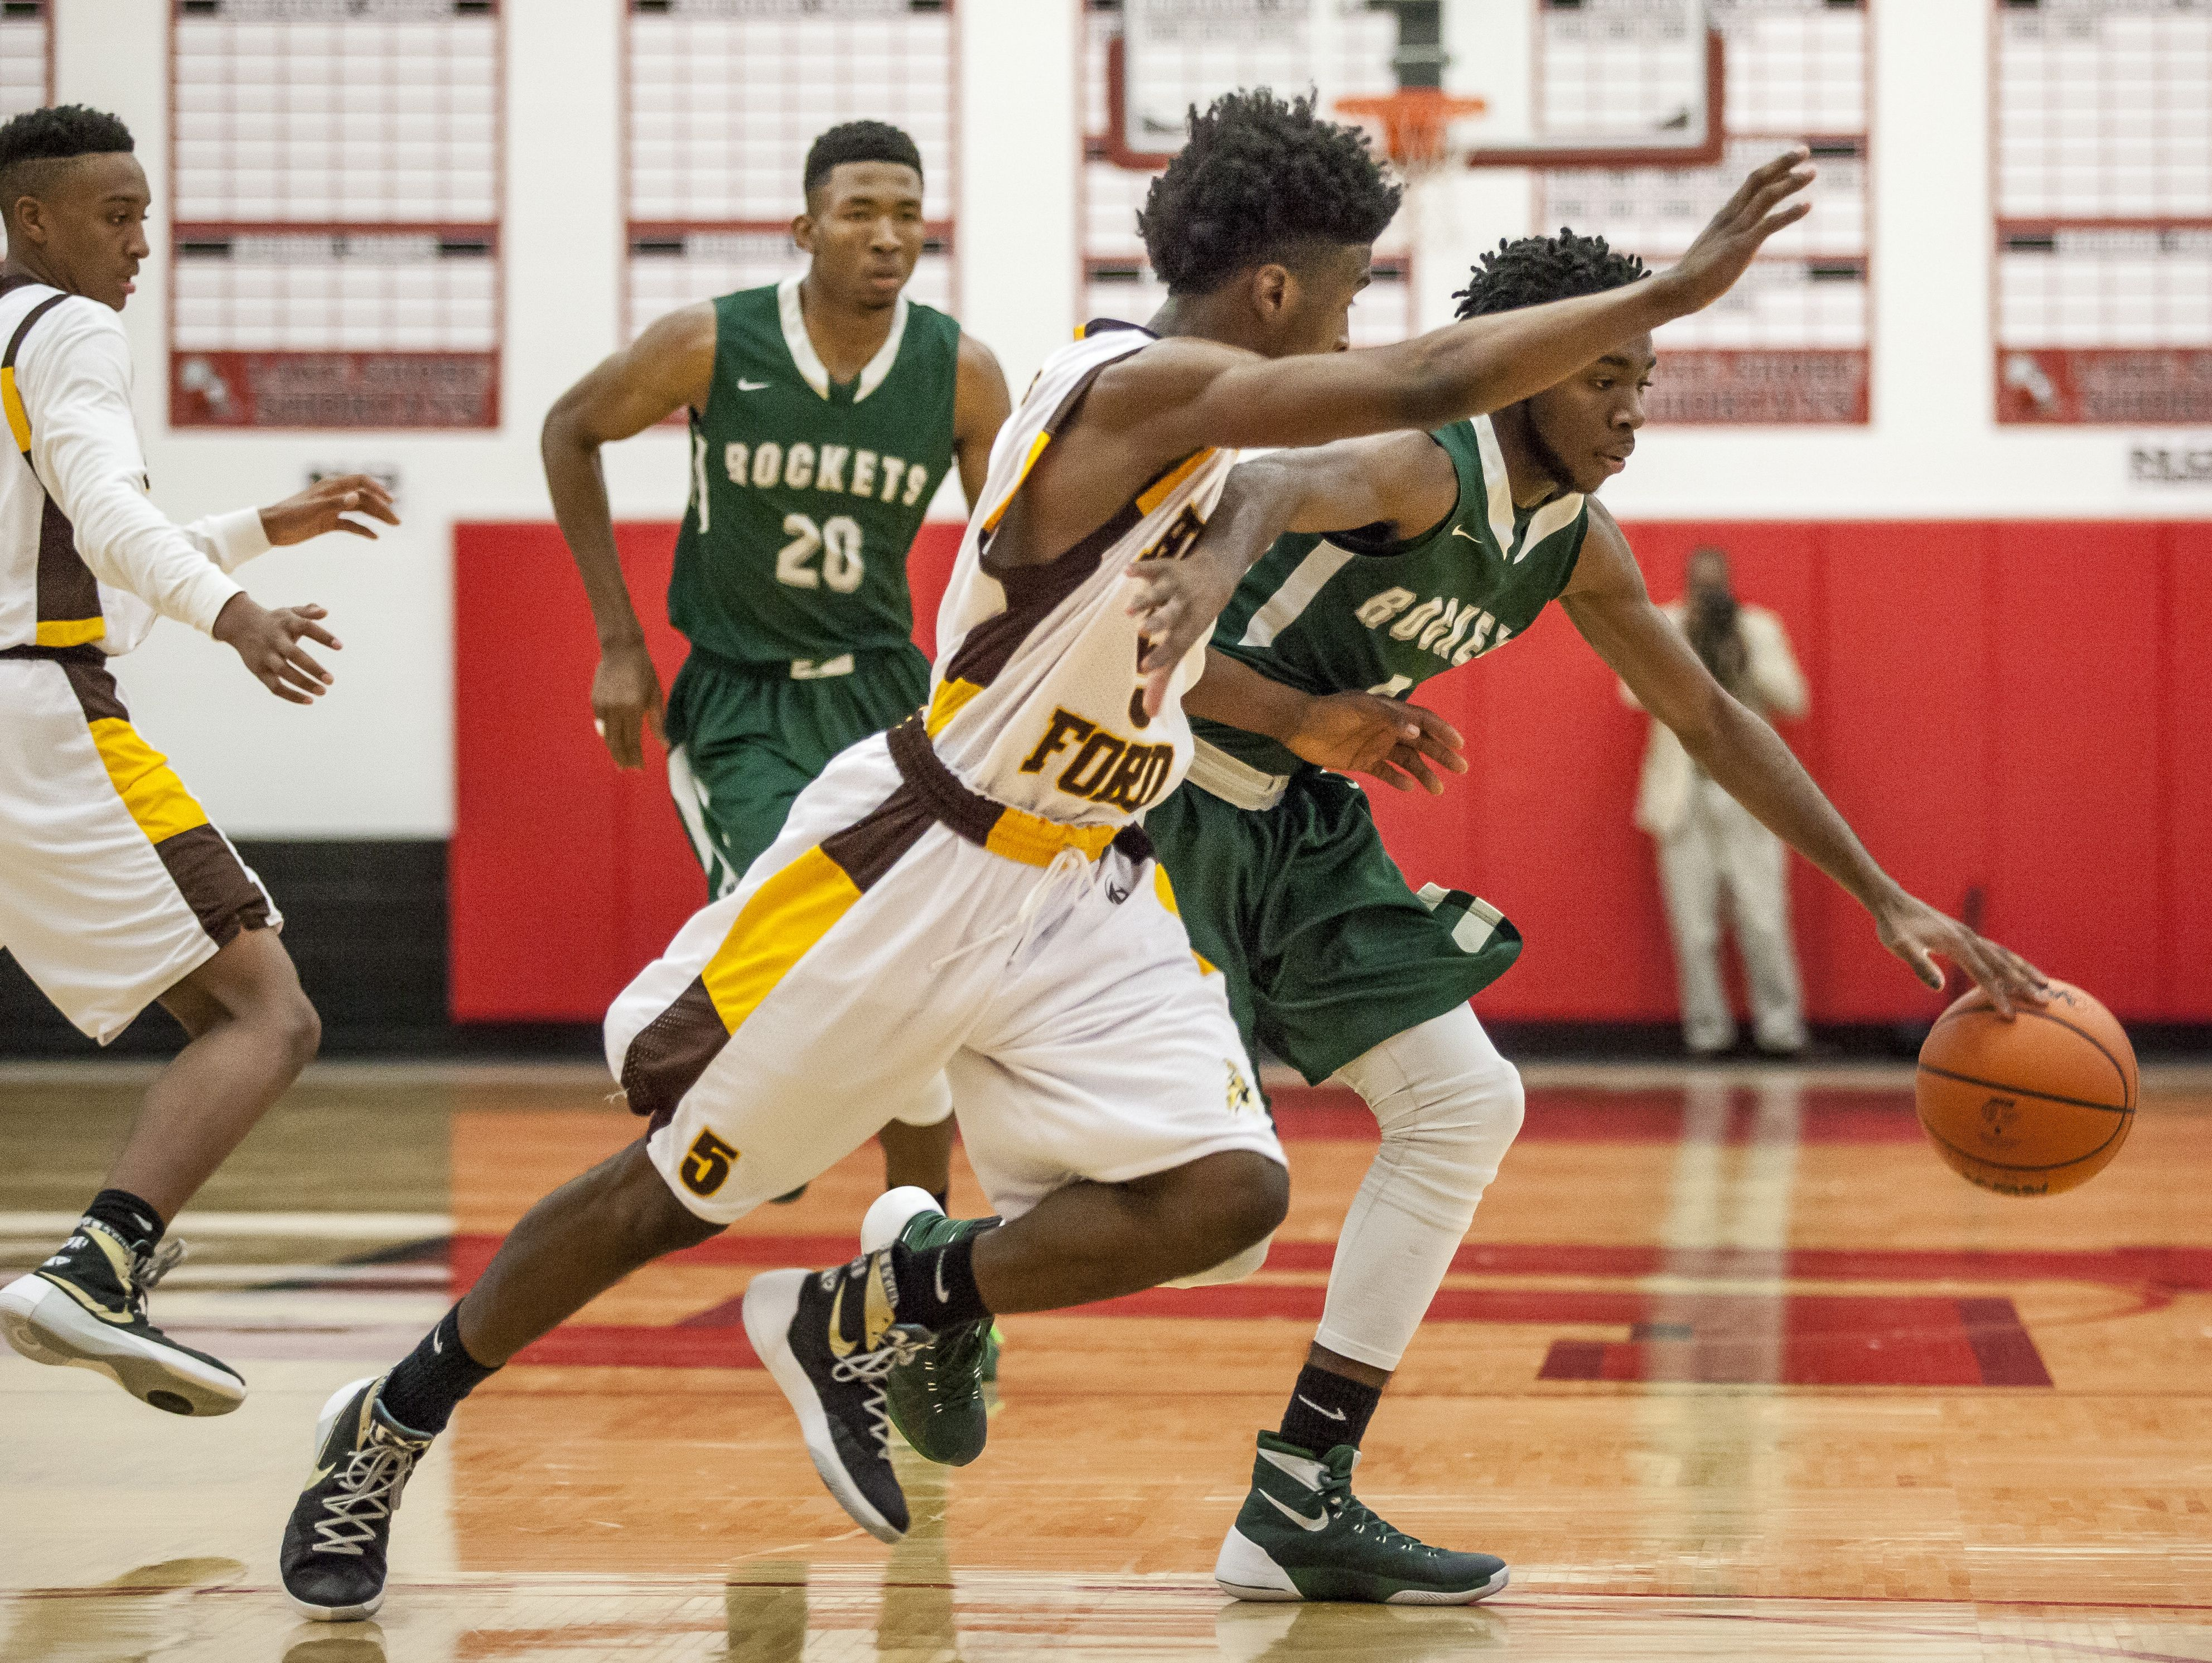 New Haven senior Alante Stevens tries to get past Detroit Henry Ford senior James Towns during a quarterfinal basketball game Tuesday, March 22, 2016 at Lakeshore High School in St. Clair Shores.